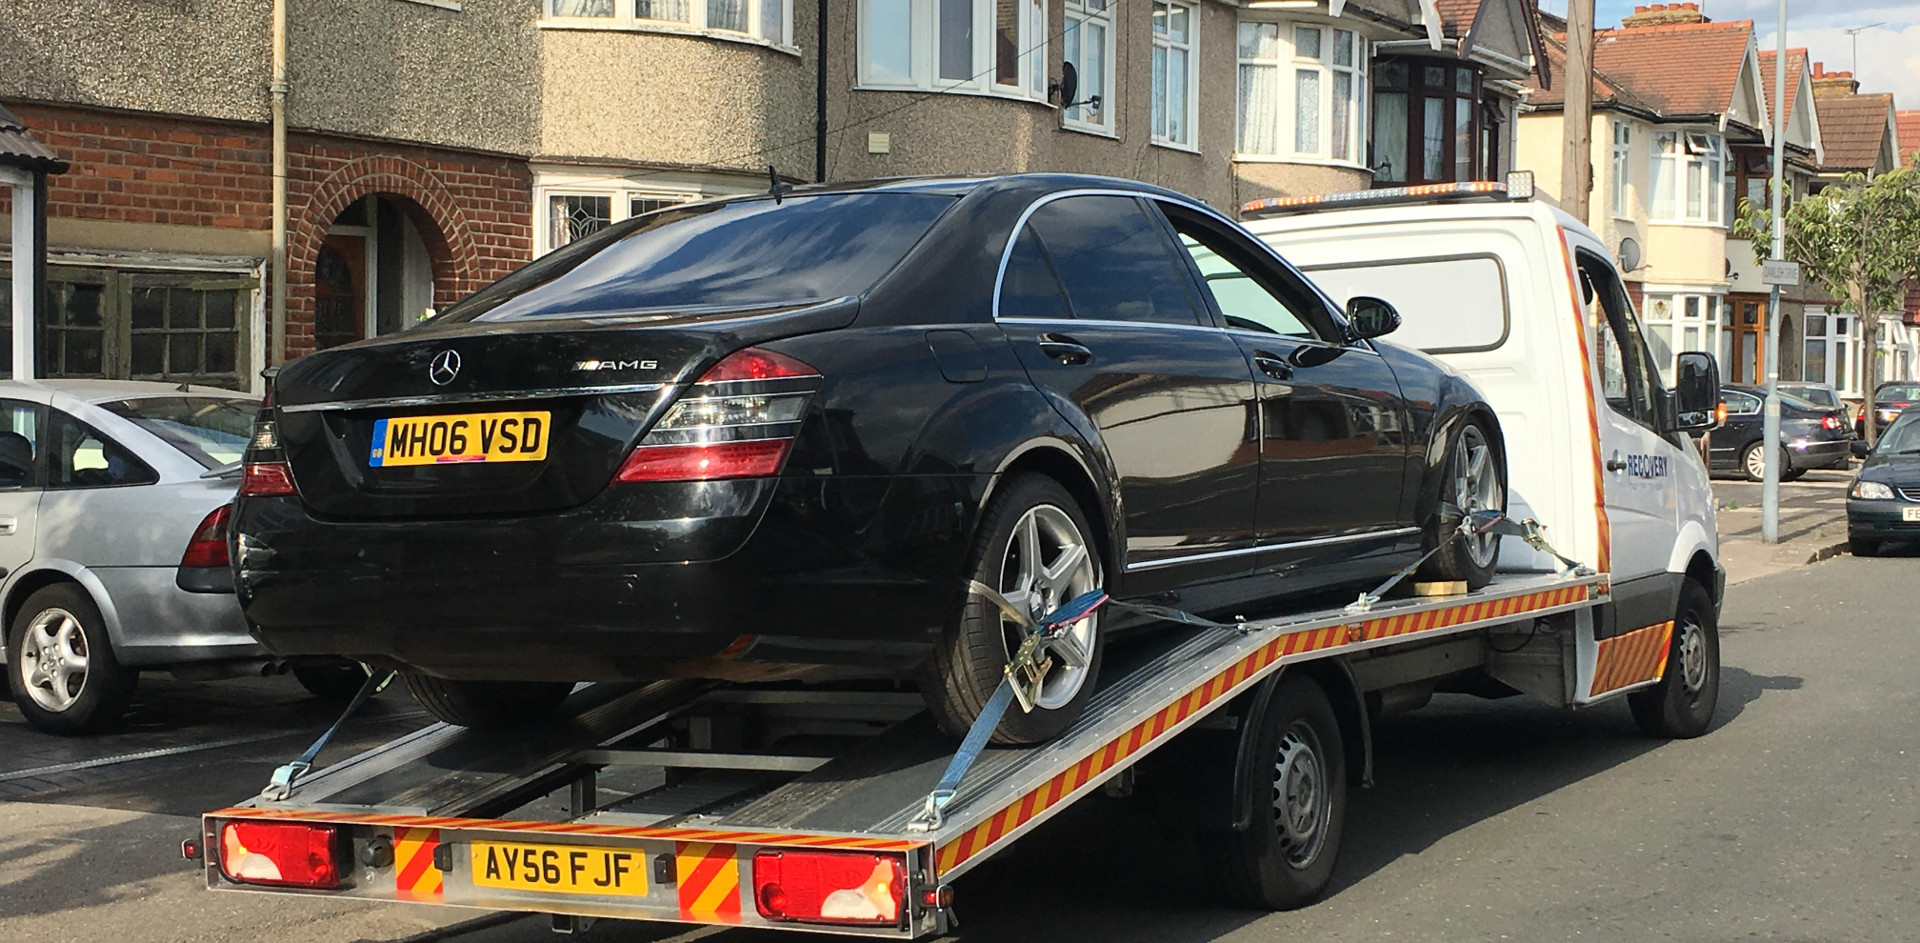 Car Recovery in London